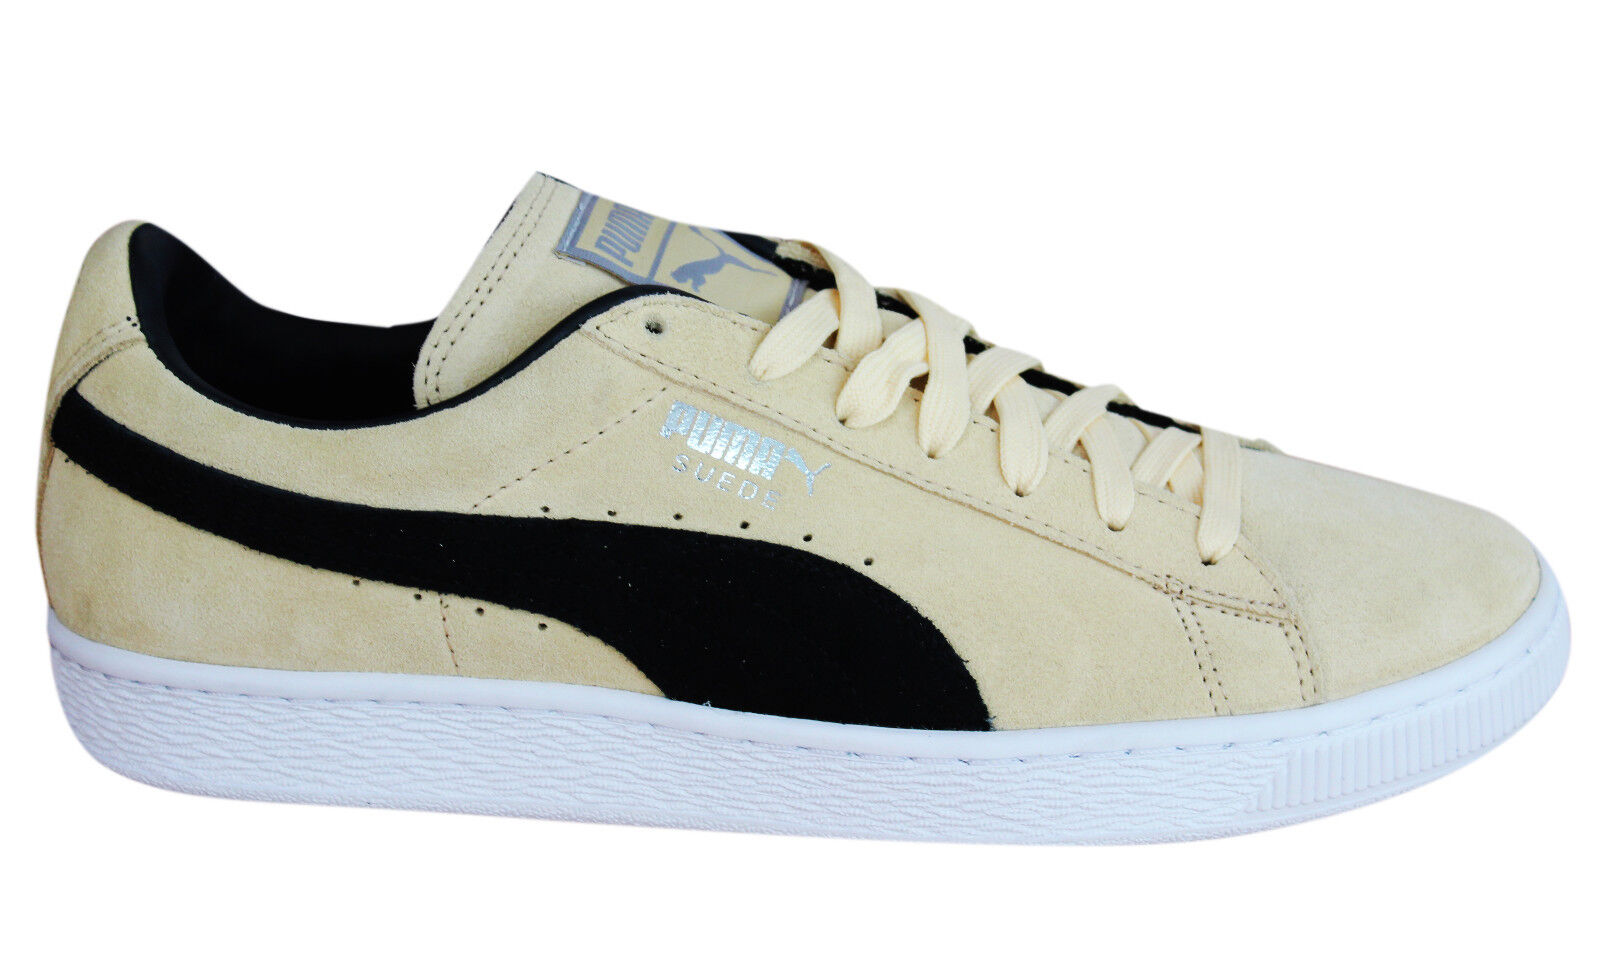 Puma Zapatos Ante Classics+ Hombre Trainers Lace Up Low Zapatos Puma Leather 363242 45 M11 4d8af5